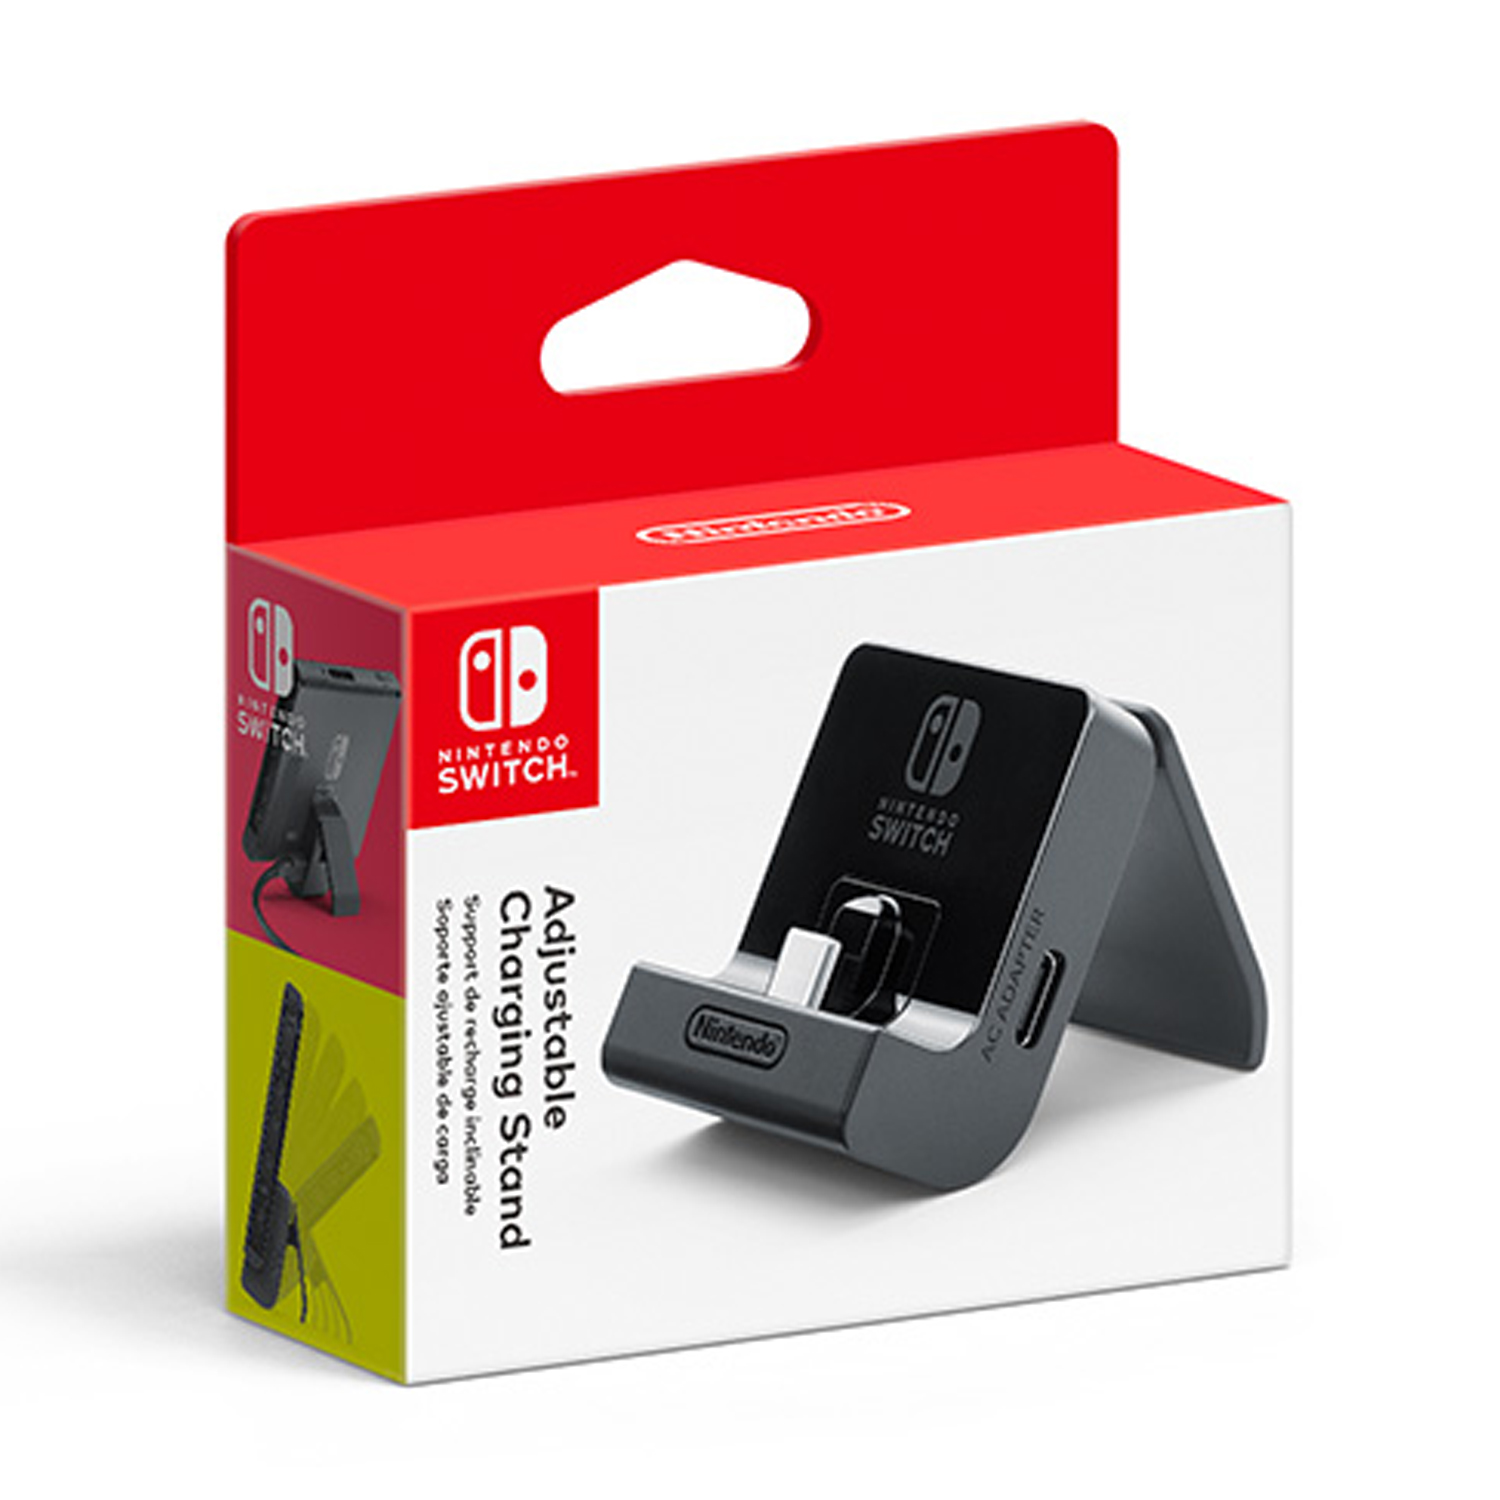 Nintendo Switch, Adjustable Charging Stand, Black, HACACDTKA